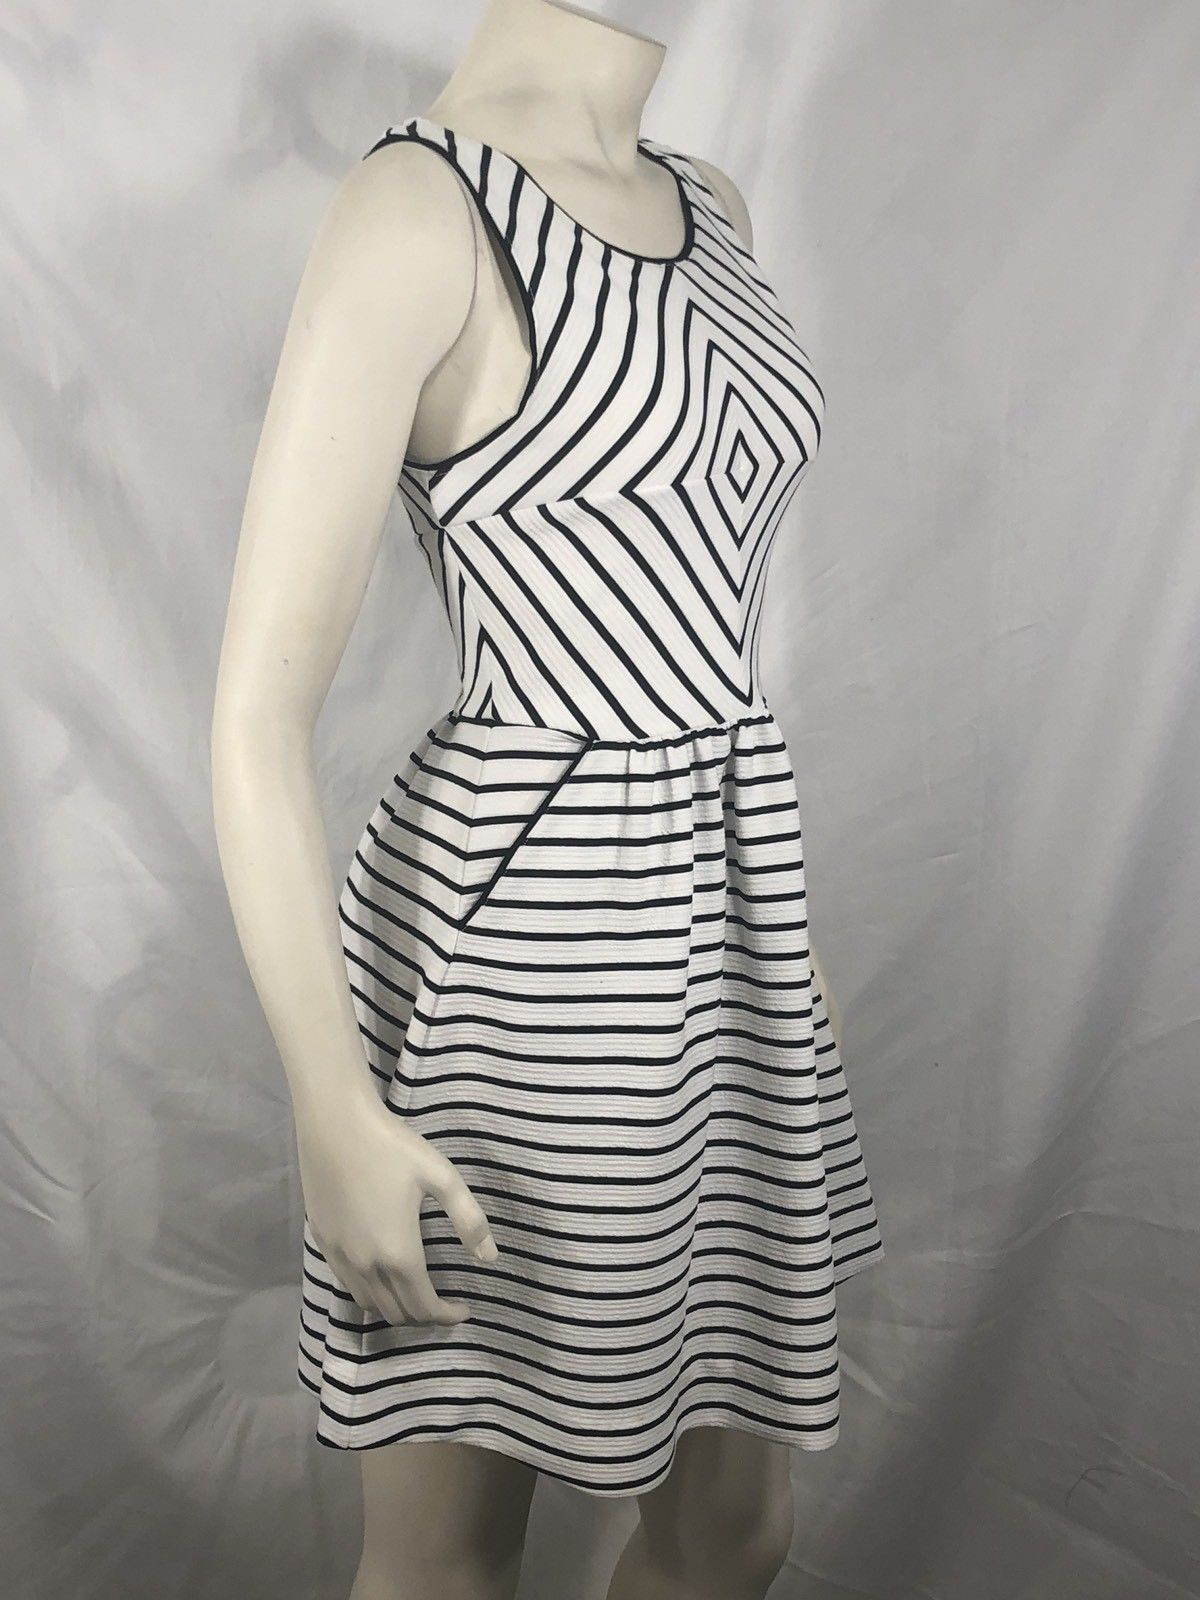 Maeve Dress Anthropologie 4 (S) White Black Stripe A Line Fit Flare Sleevless